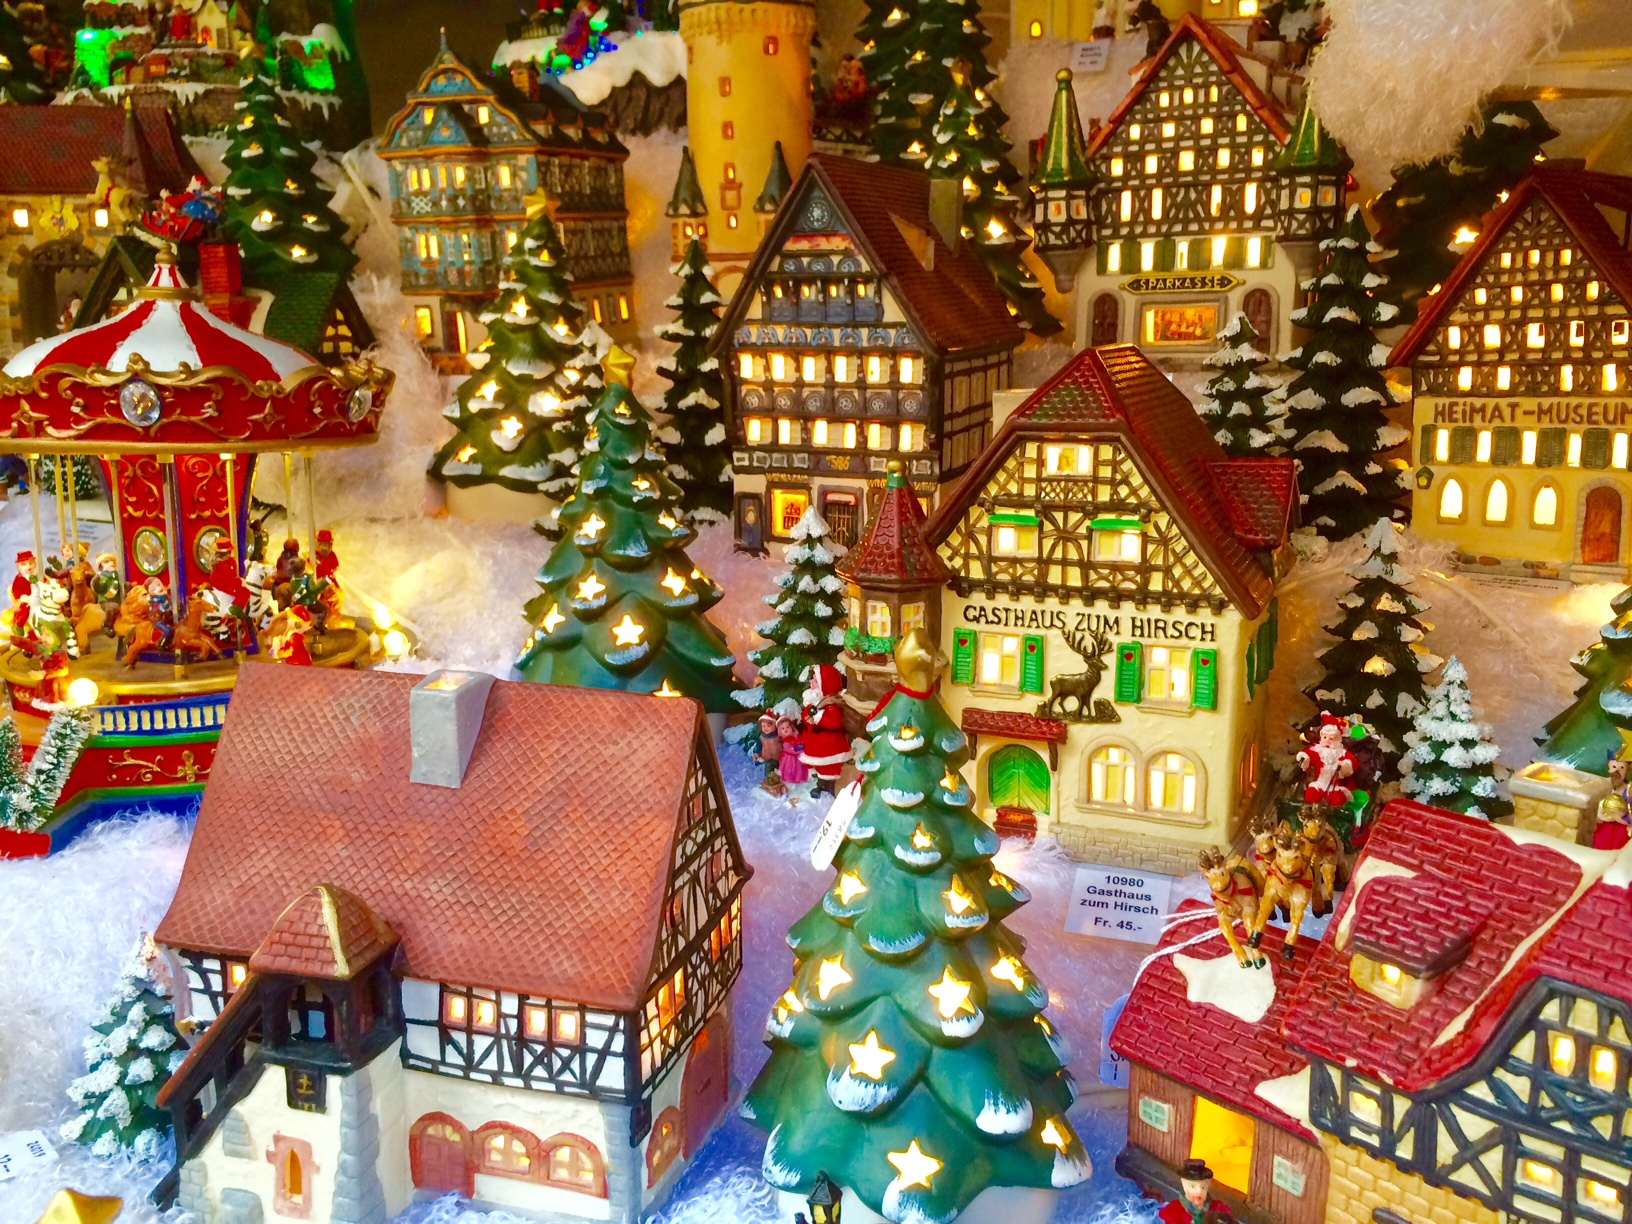 a lighted miniature christmas village in basel switzerland - Miniature Christmas Town Decorations